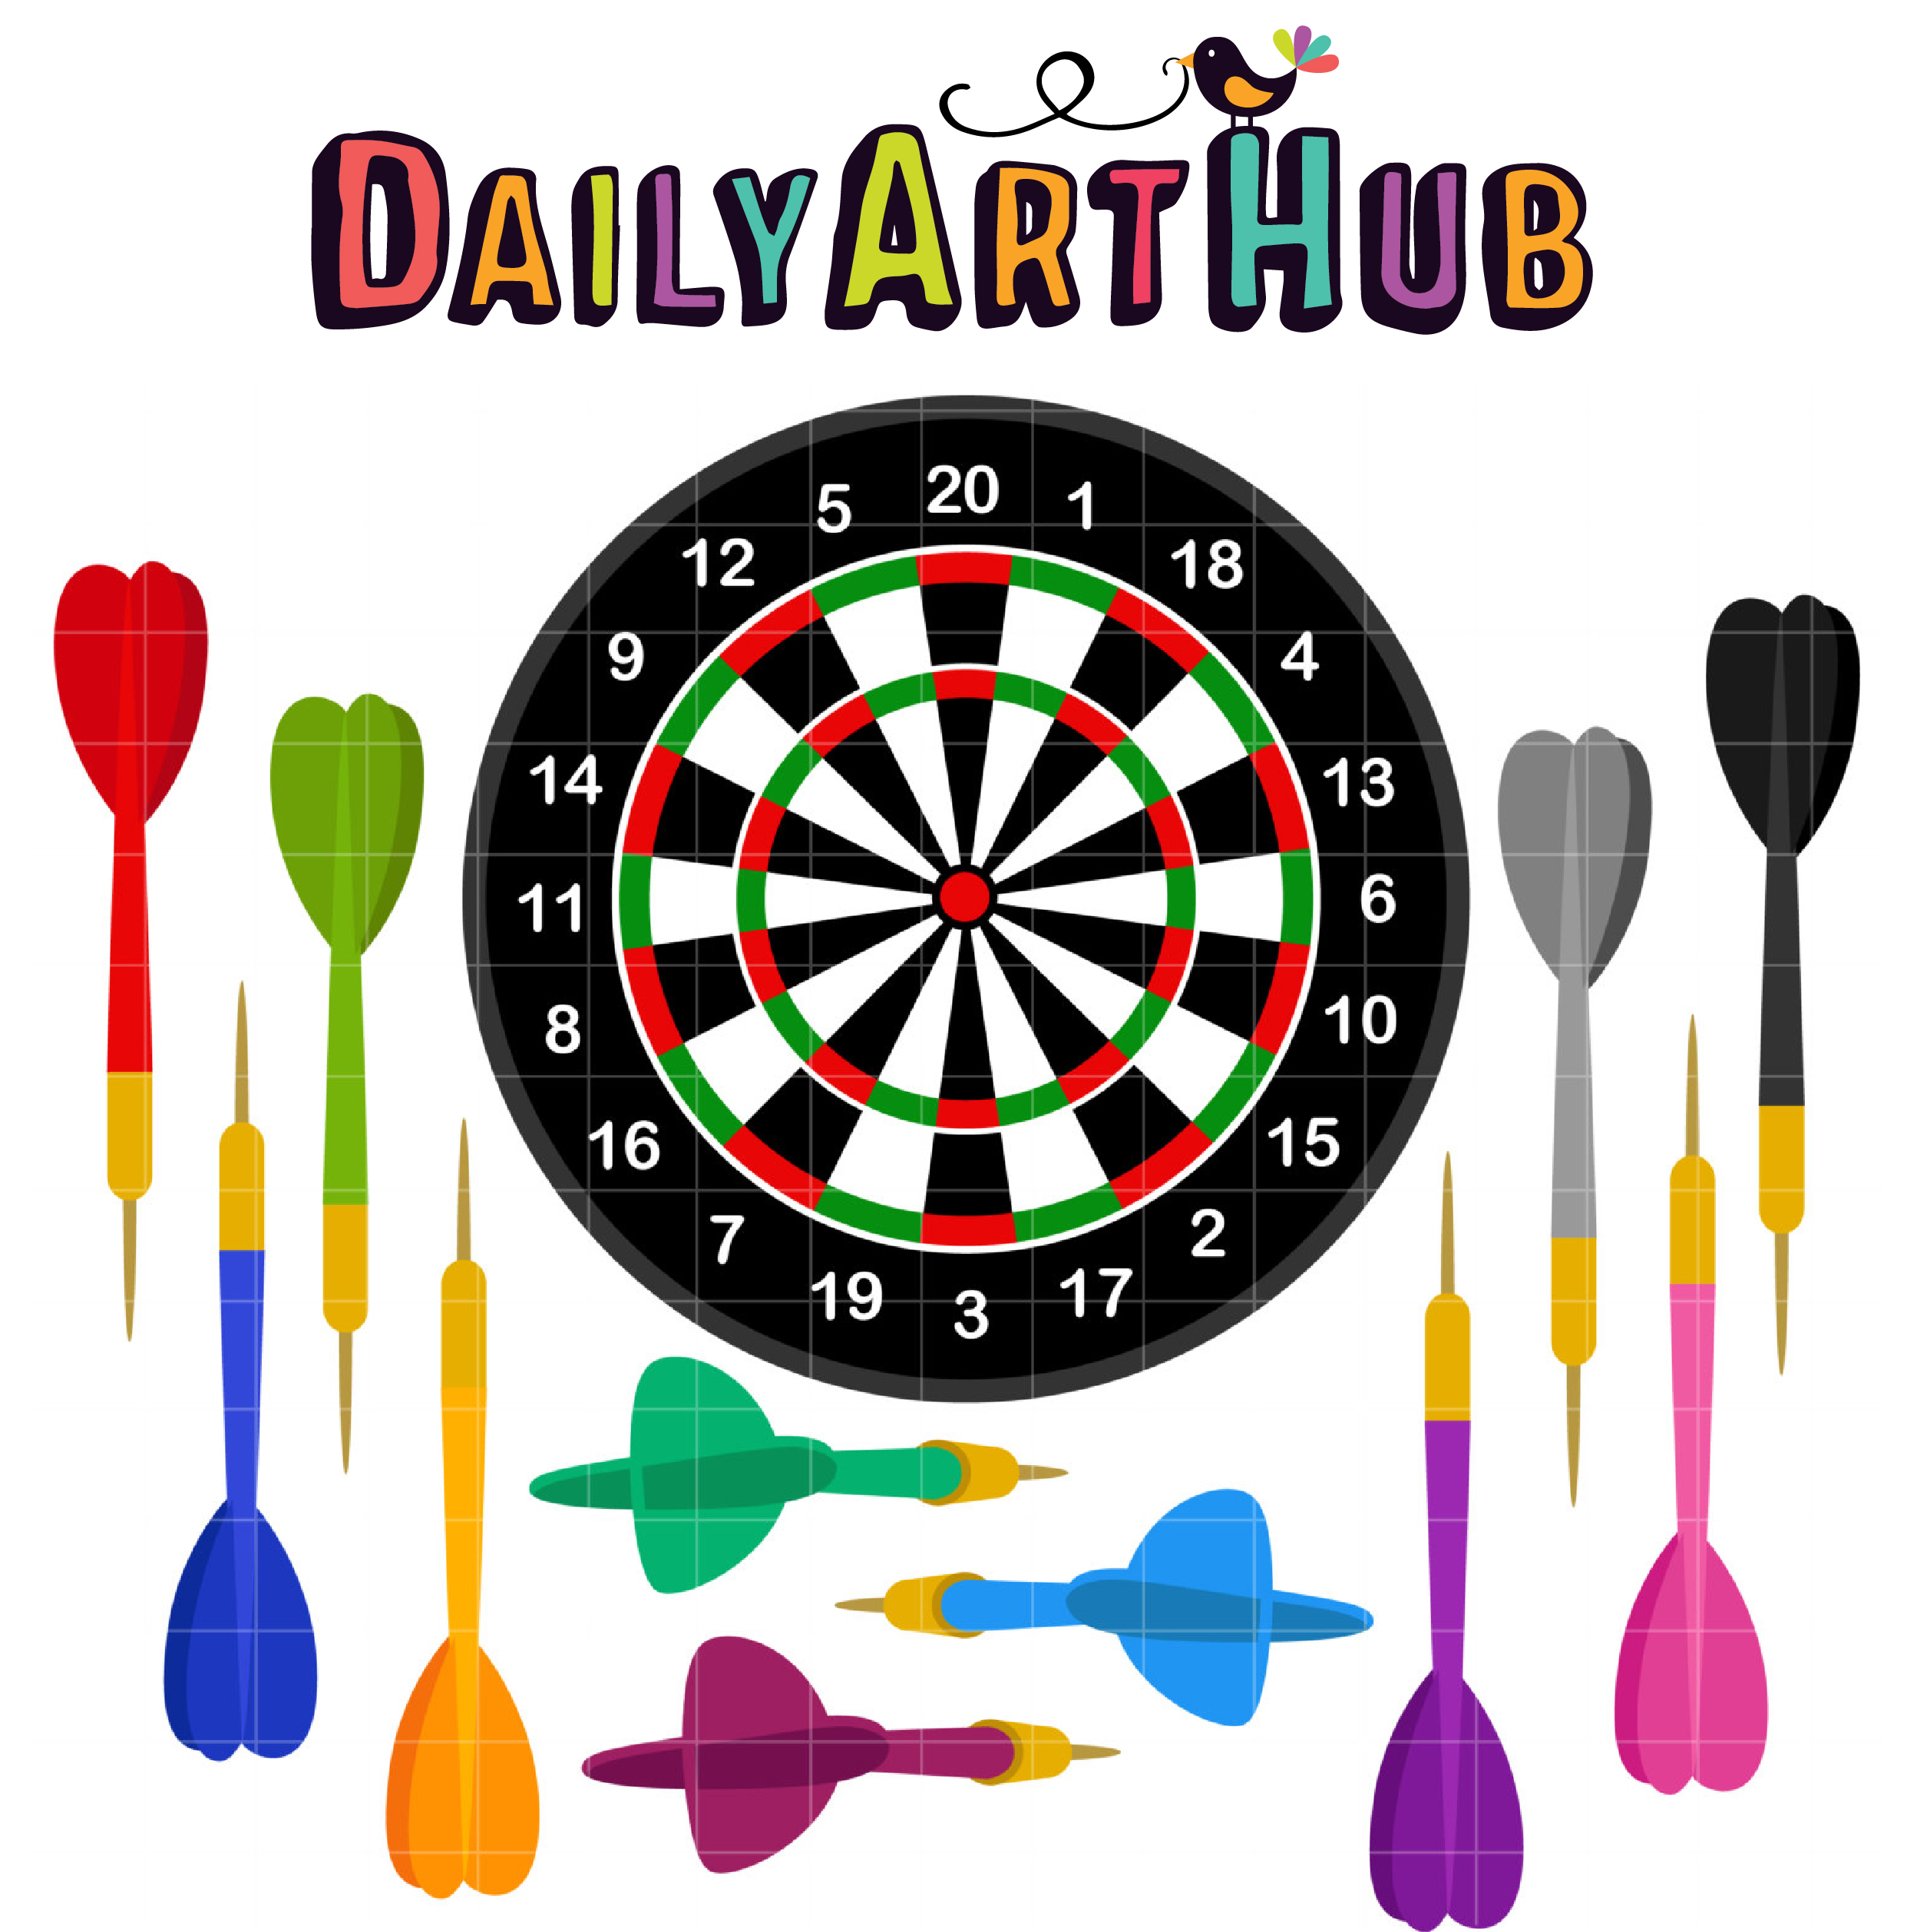 2497x2516 Darts Game Clip Art Set Daily Art Hub Free Clip Art Everyday